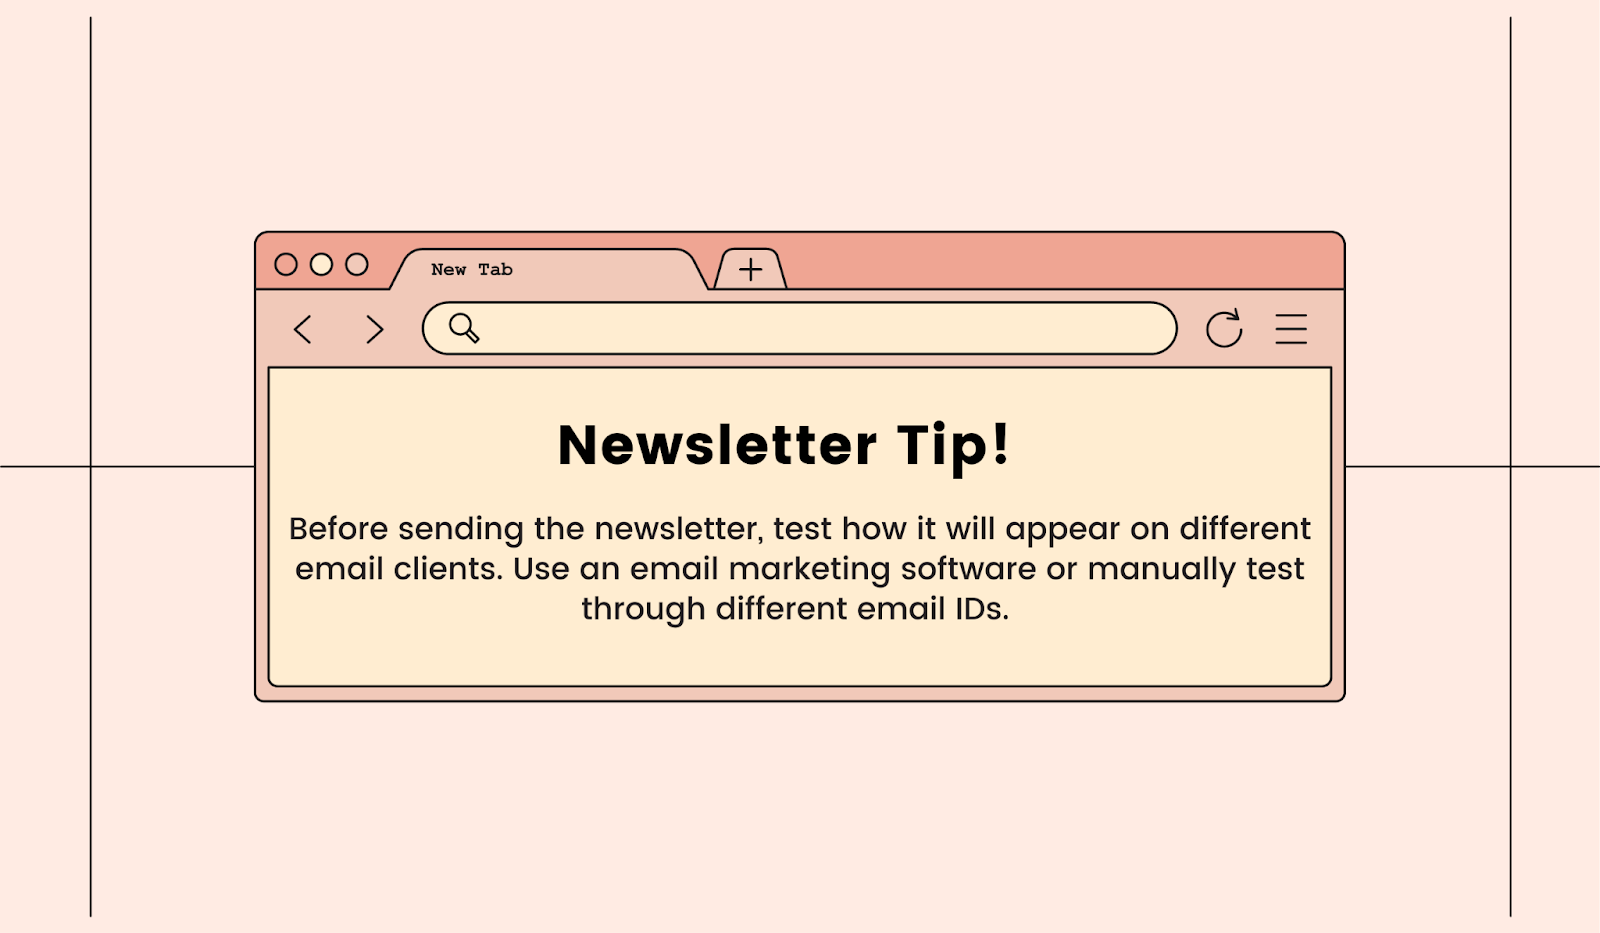 Tip to follow before sending newsletters